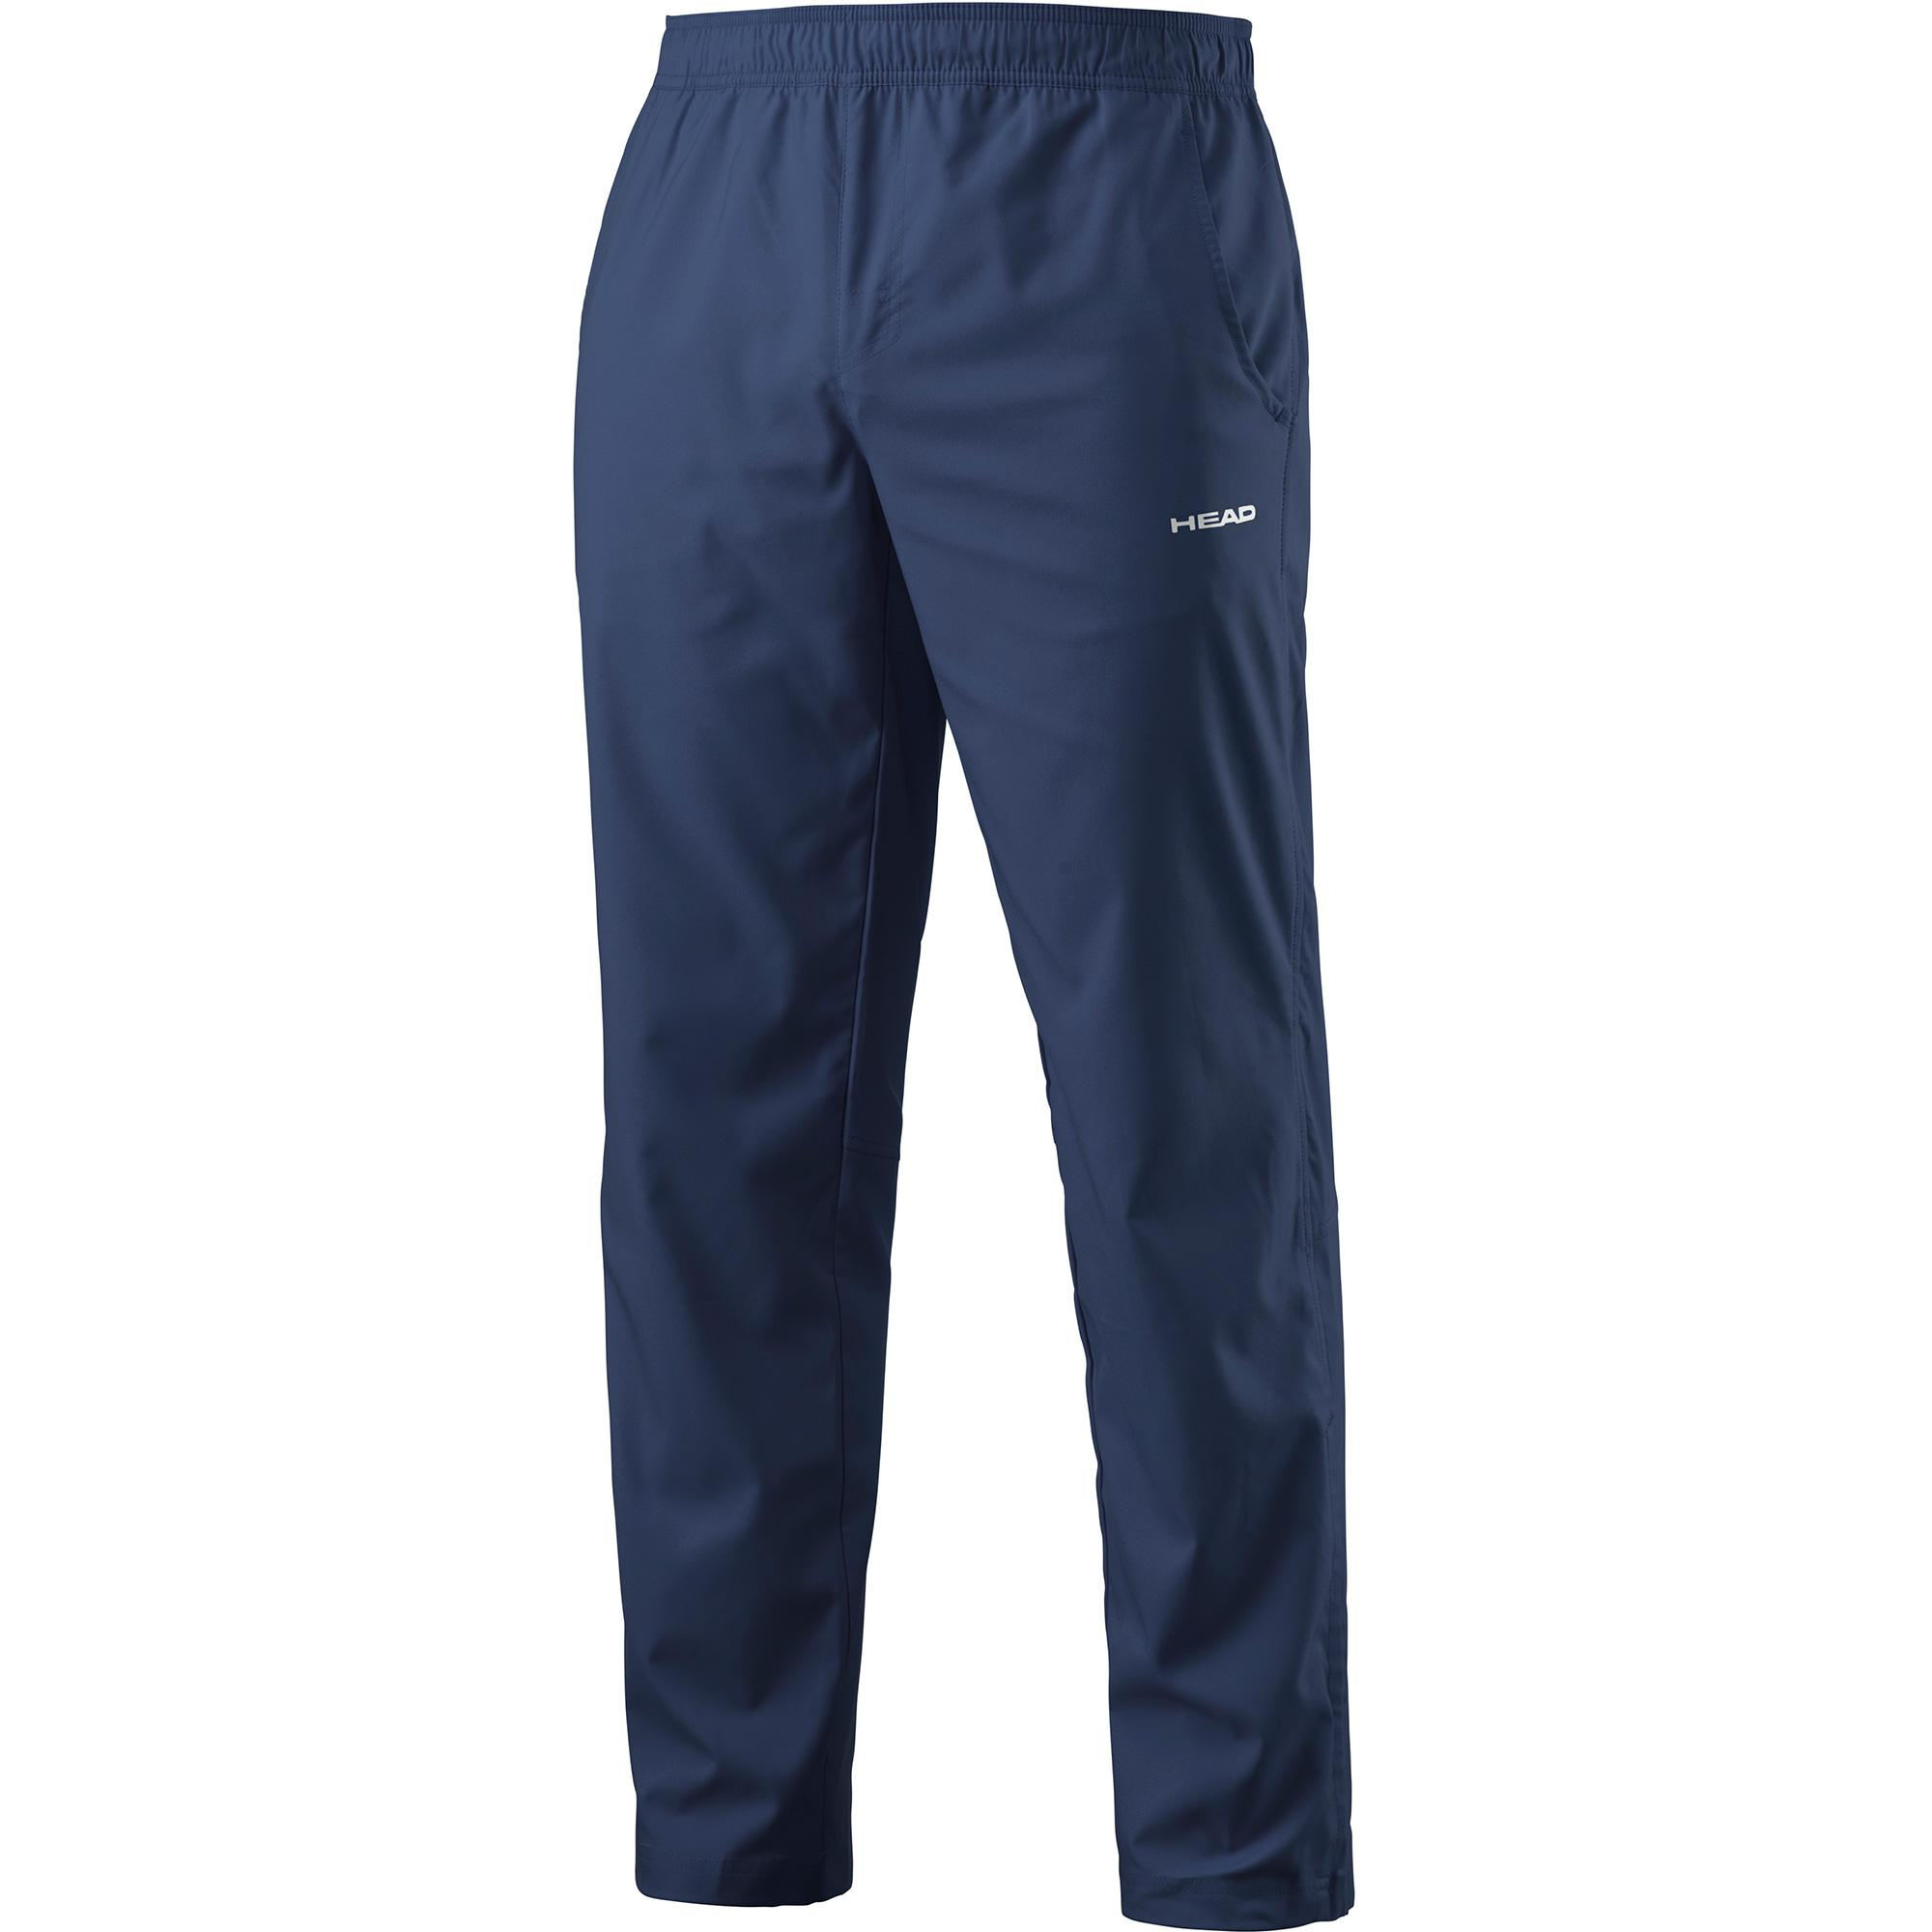 Head Club Pantalone Navy Uomo